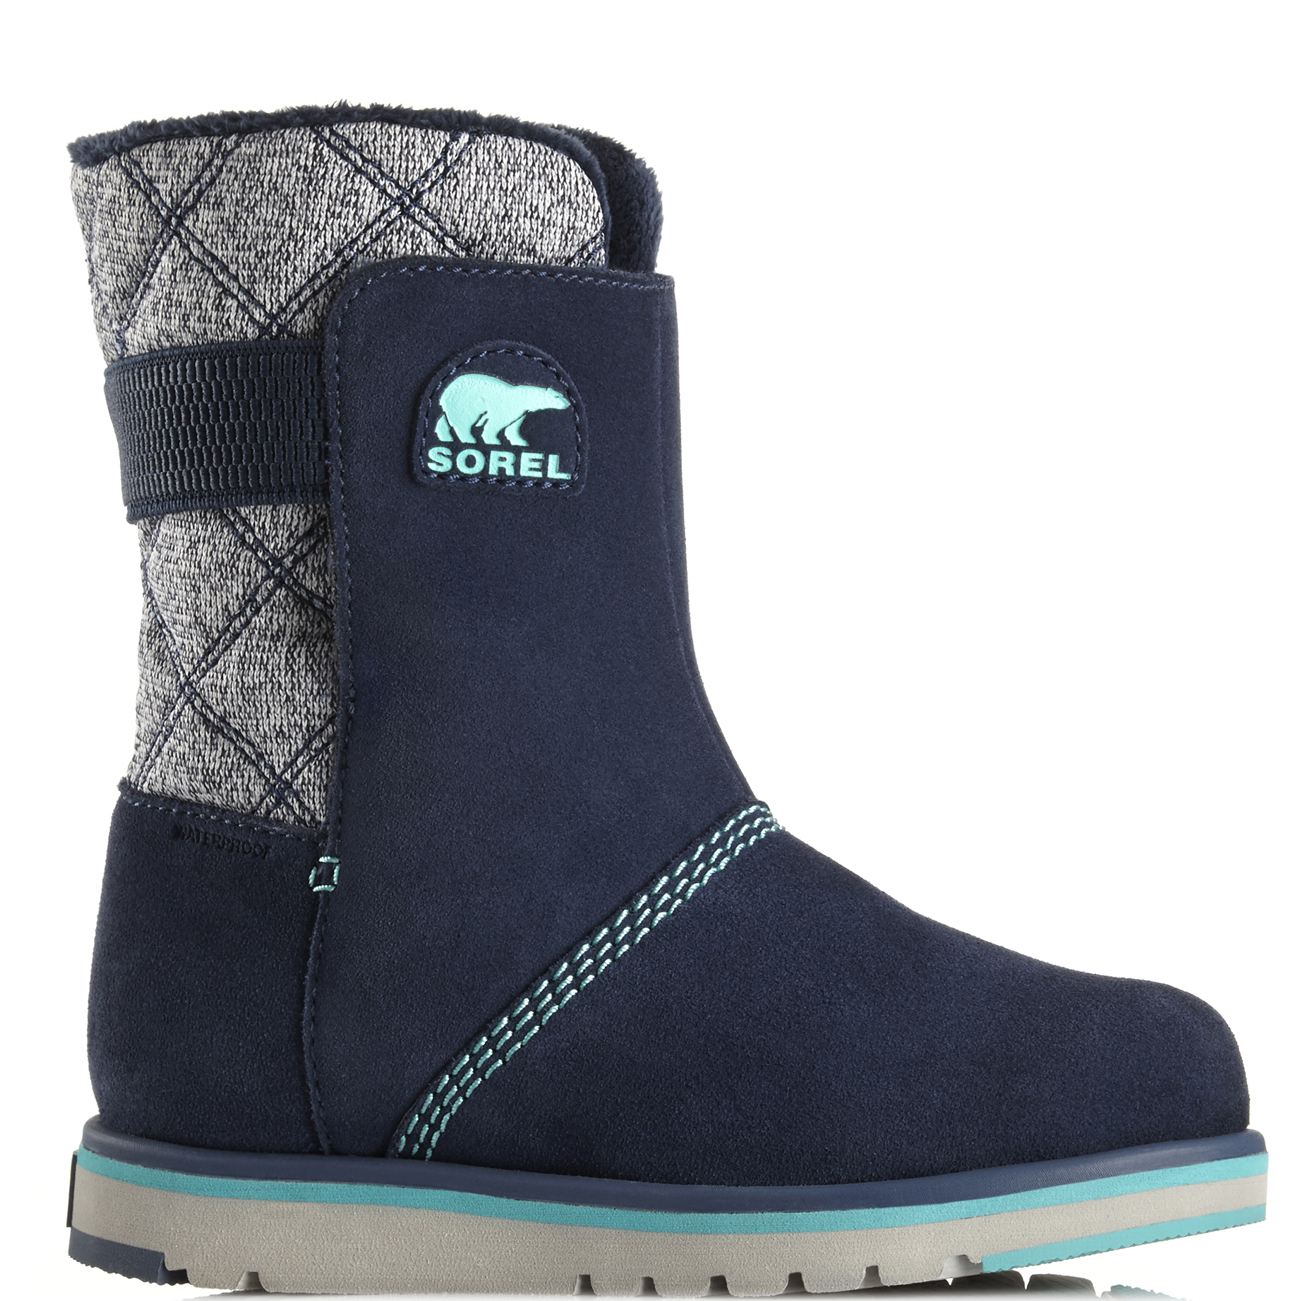 Sorel Youth Rylee